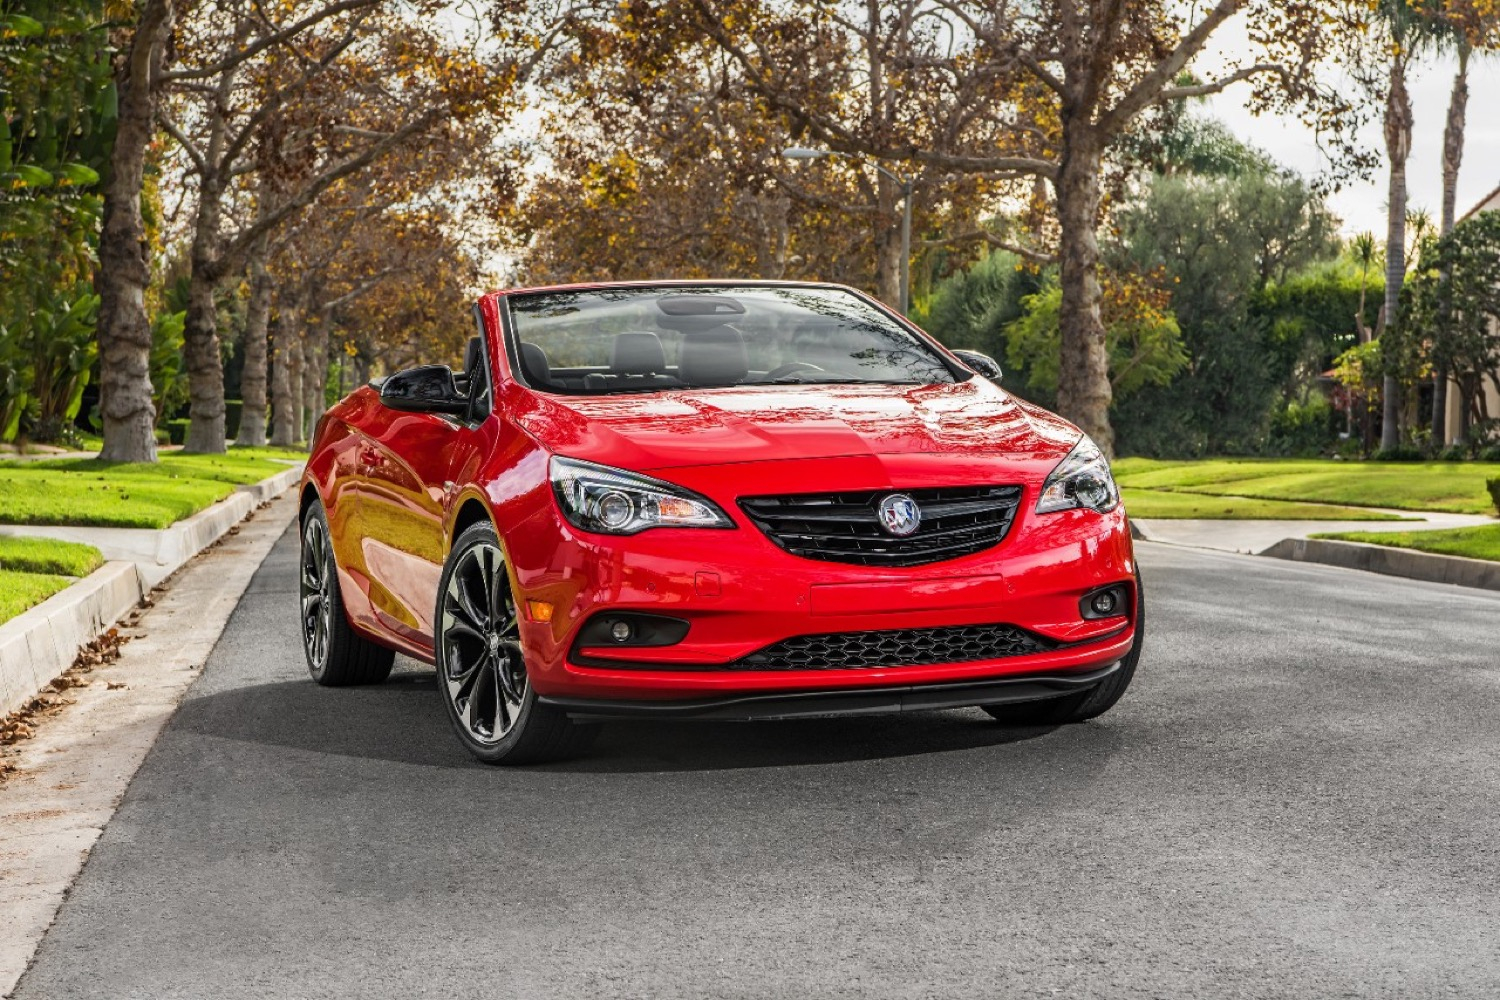 Buick Cascada Discount Cuts Price 16 Percent September 2019 2022 Buick Cascada Lease, Trim Levels, Manual